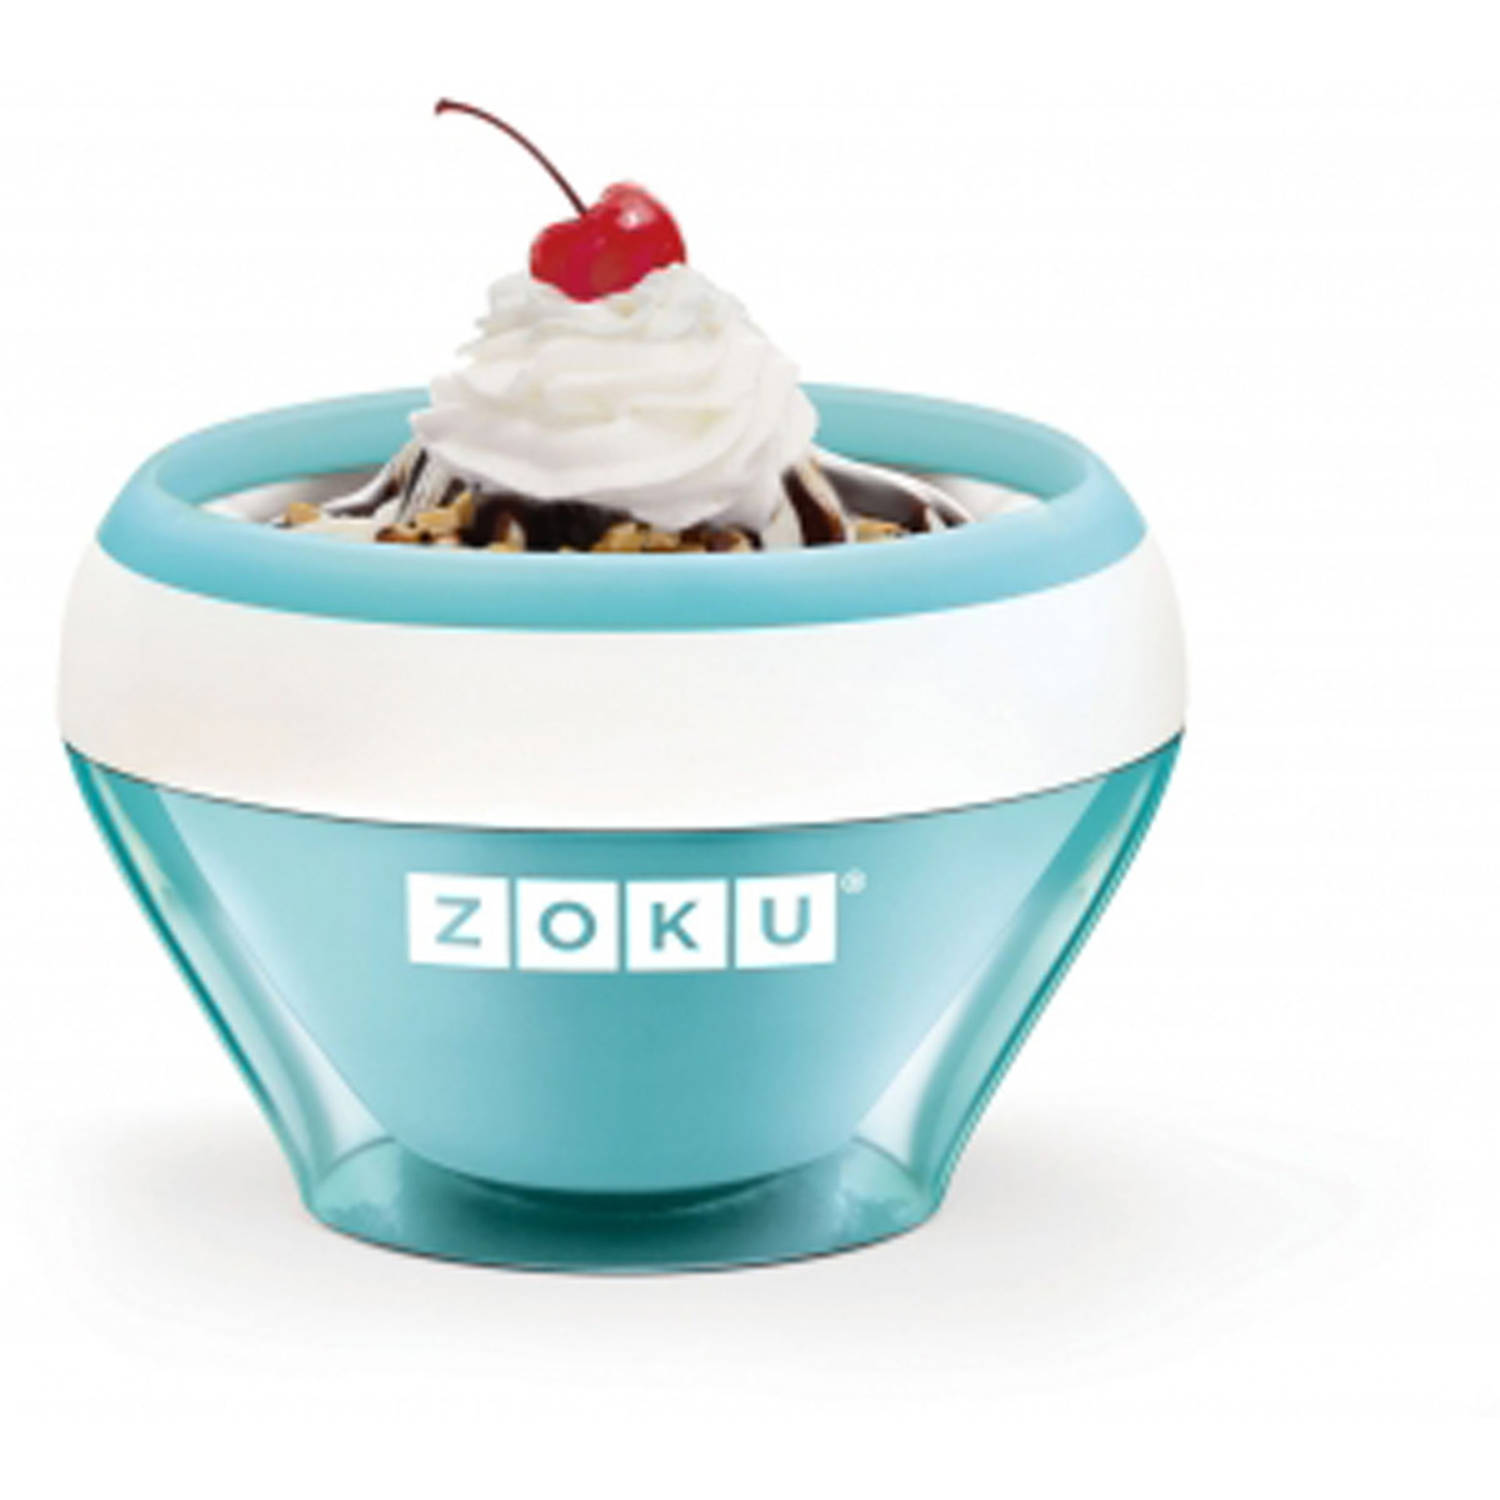 Zoku Ice Cream Maker 13,8 cm Turquoise